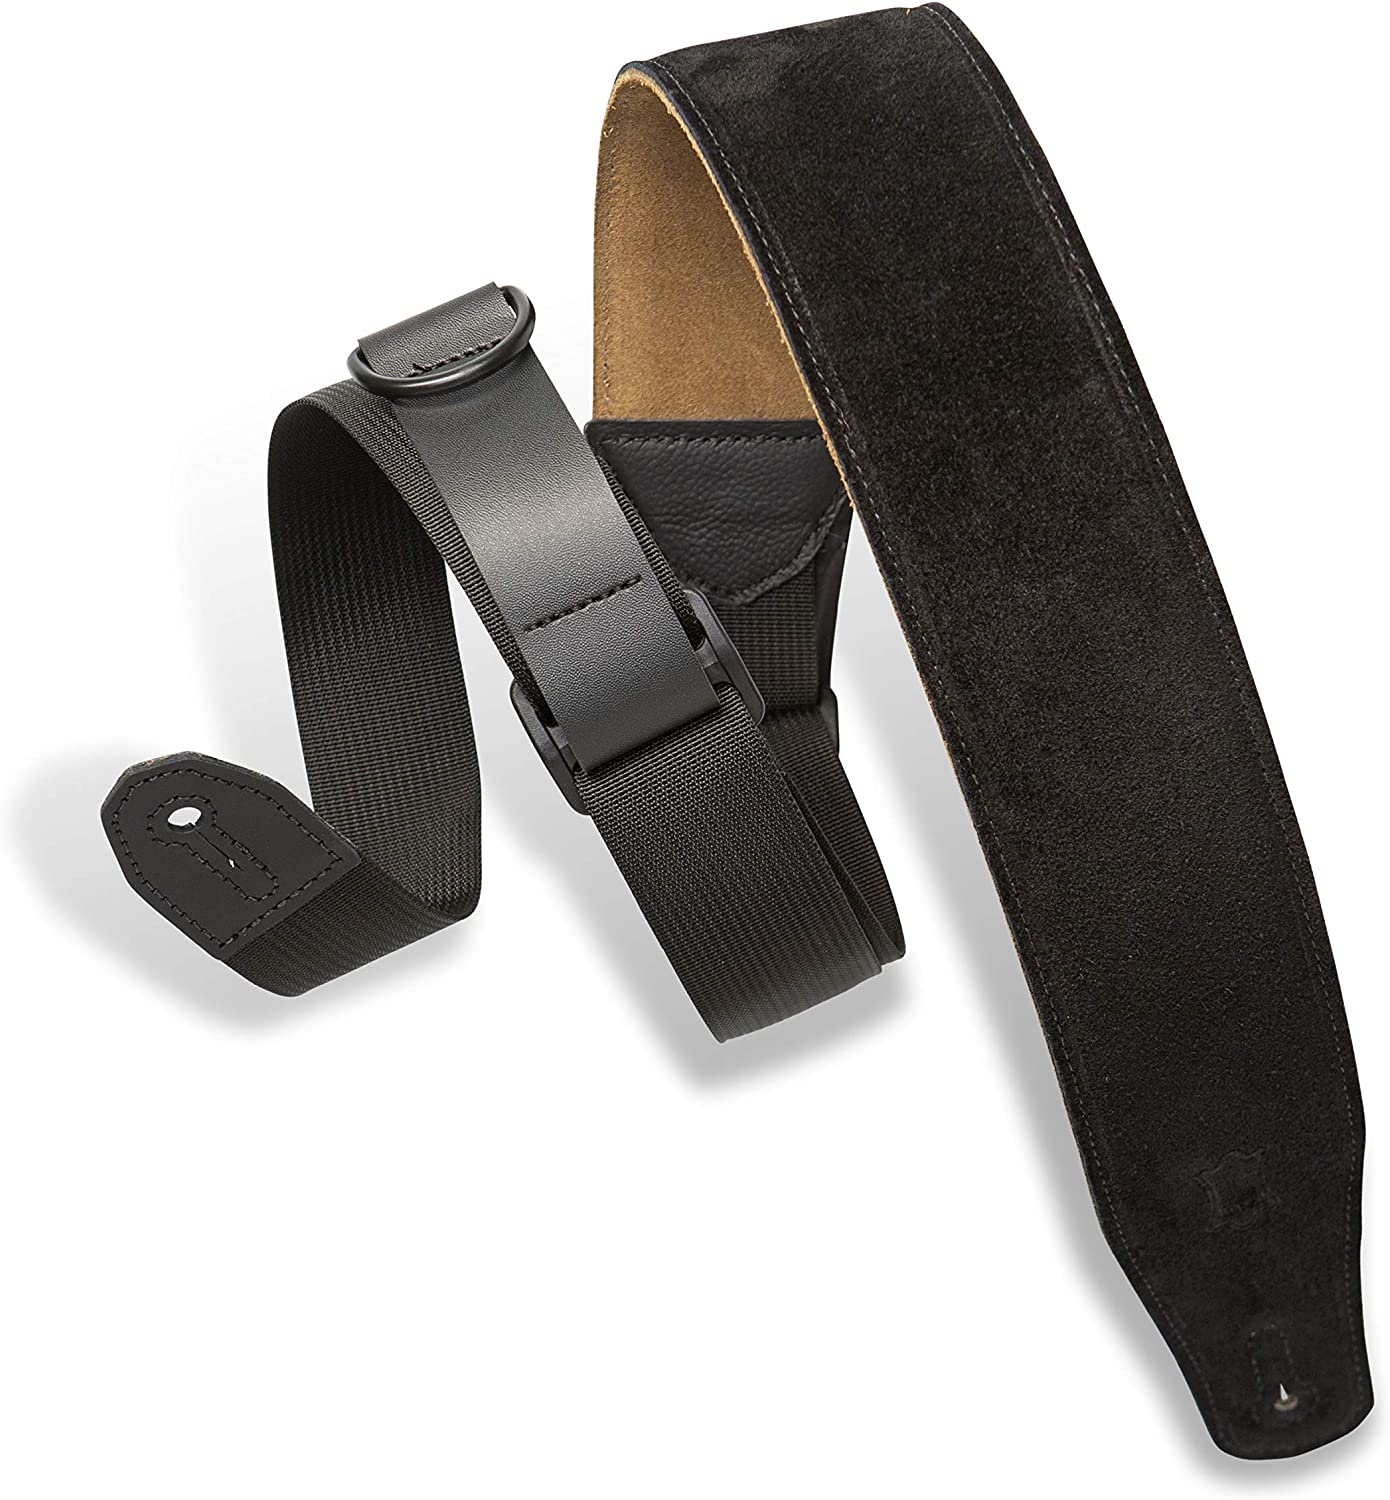 Levys Leathers Right Height Guitar Strap with RipChord Quick Adjustment Technology; 2.5 Wide Suede - Black (MRHSP-BLK)